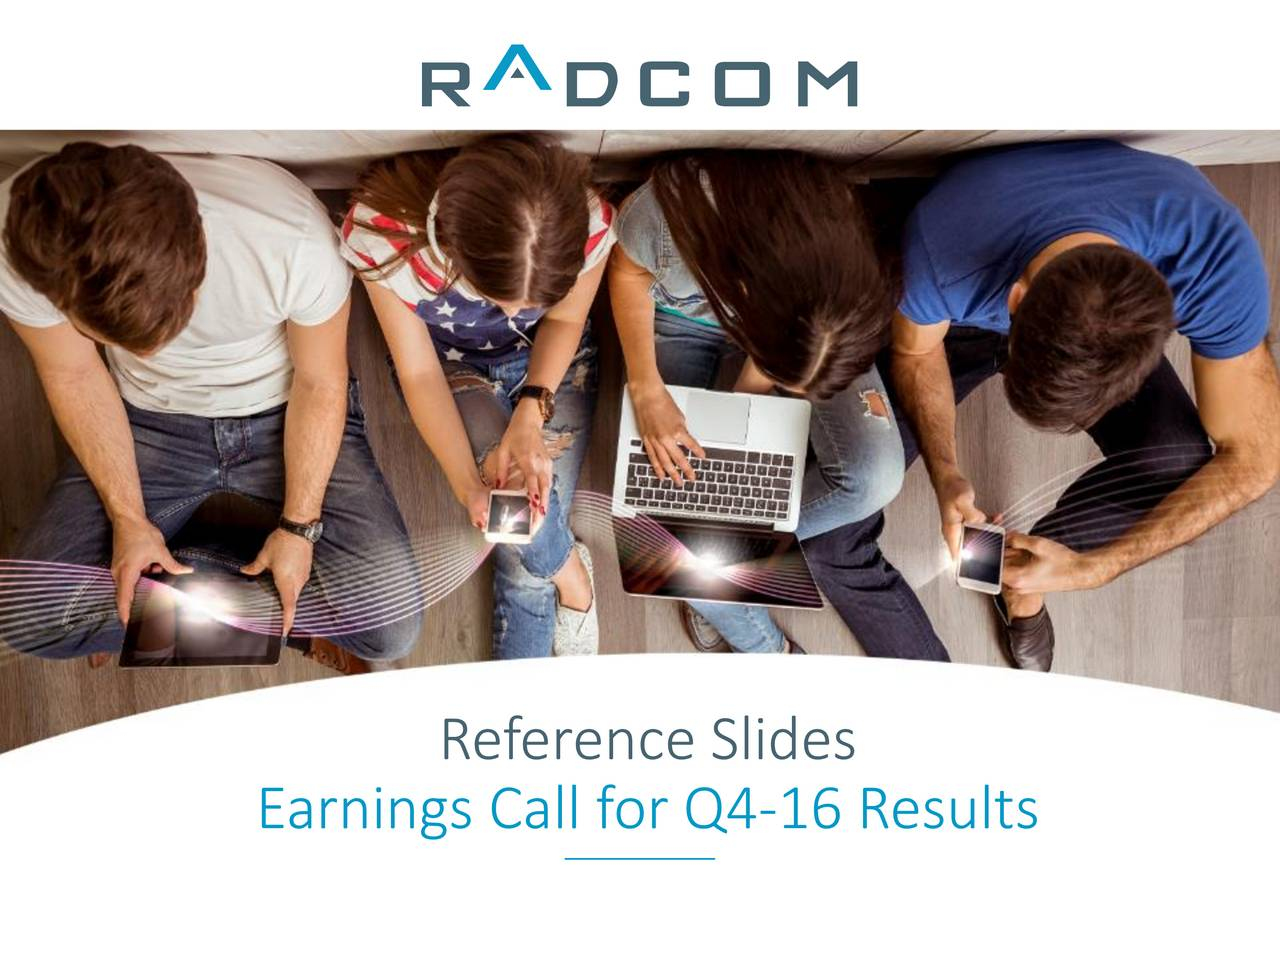 Earnings Call for Q4-16 Results